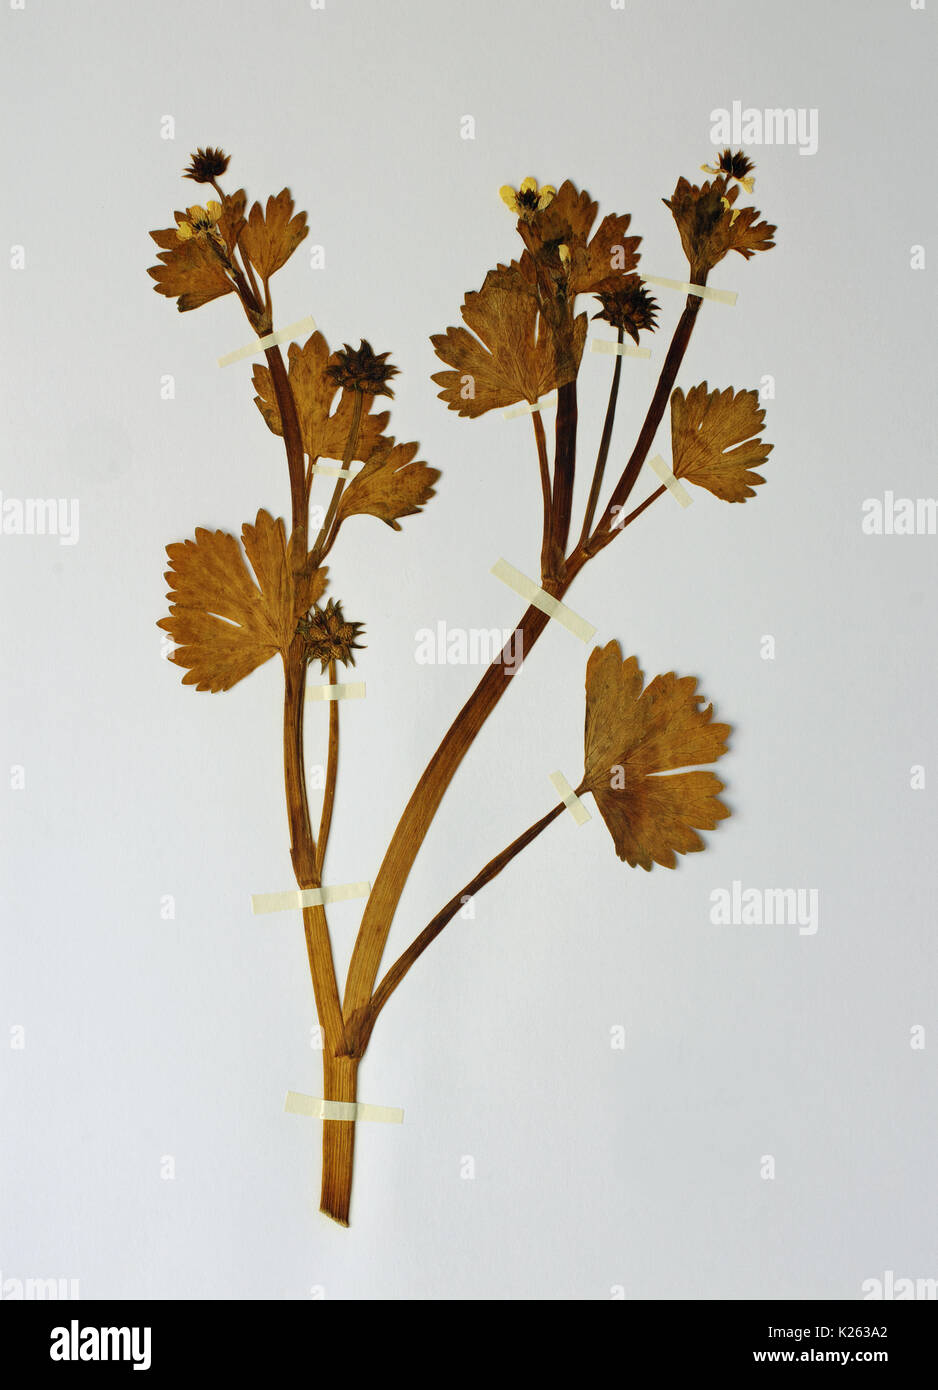 a herbarium sheet with Ranunculus muricatus, the Rough-fruited buttercup or Spinyfruit buttercup, family ranunculaceae Stock Photo